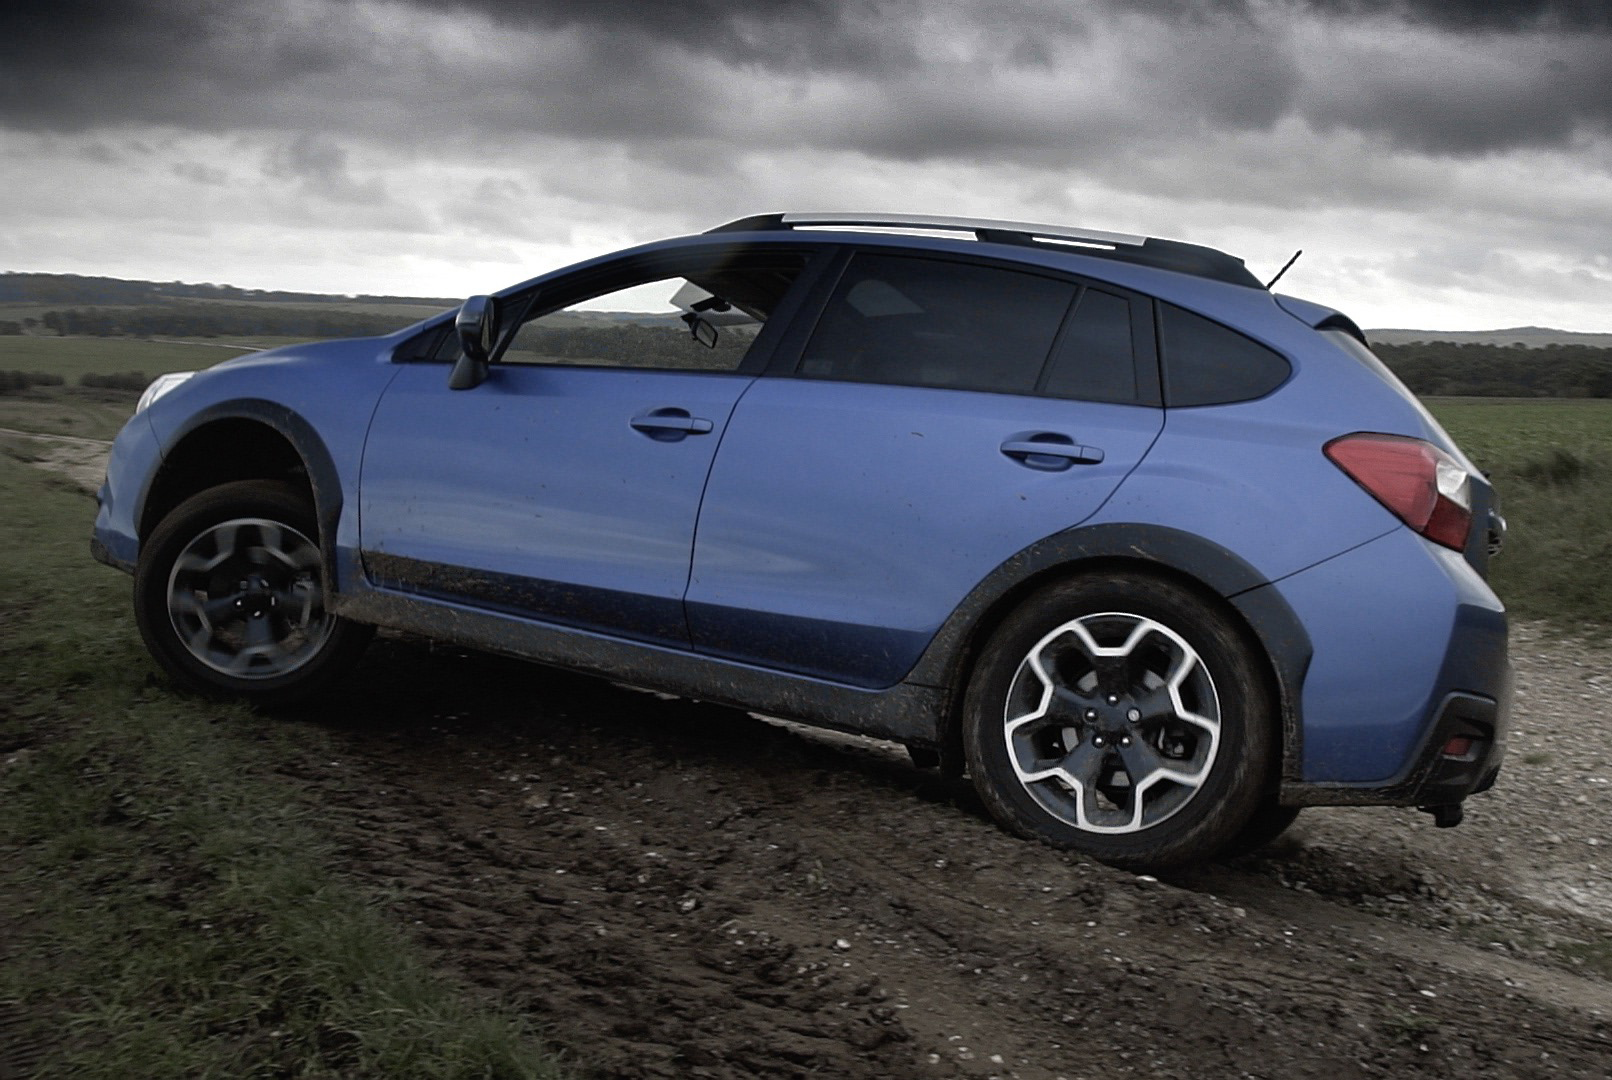 Video: Why do so many of us still buy cars with off-road abilities?